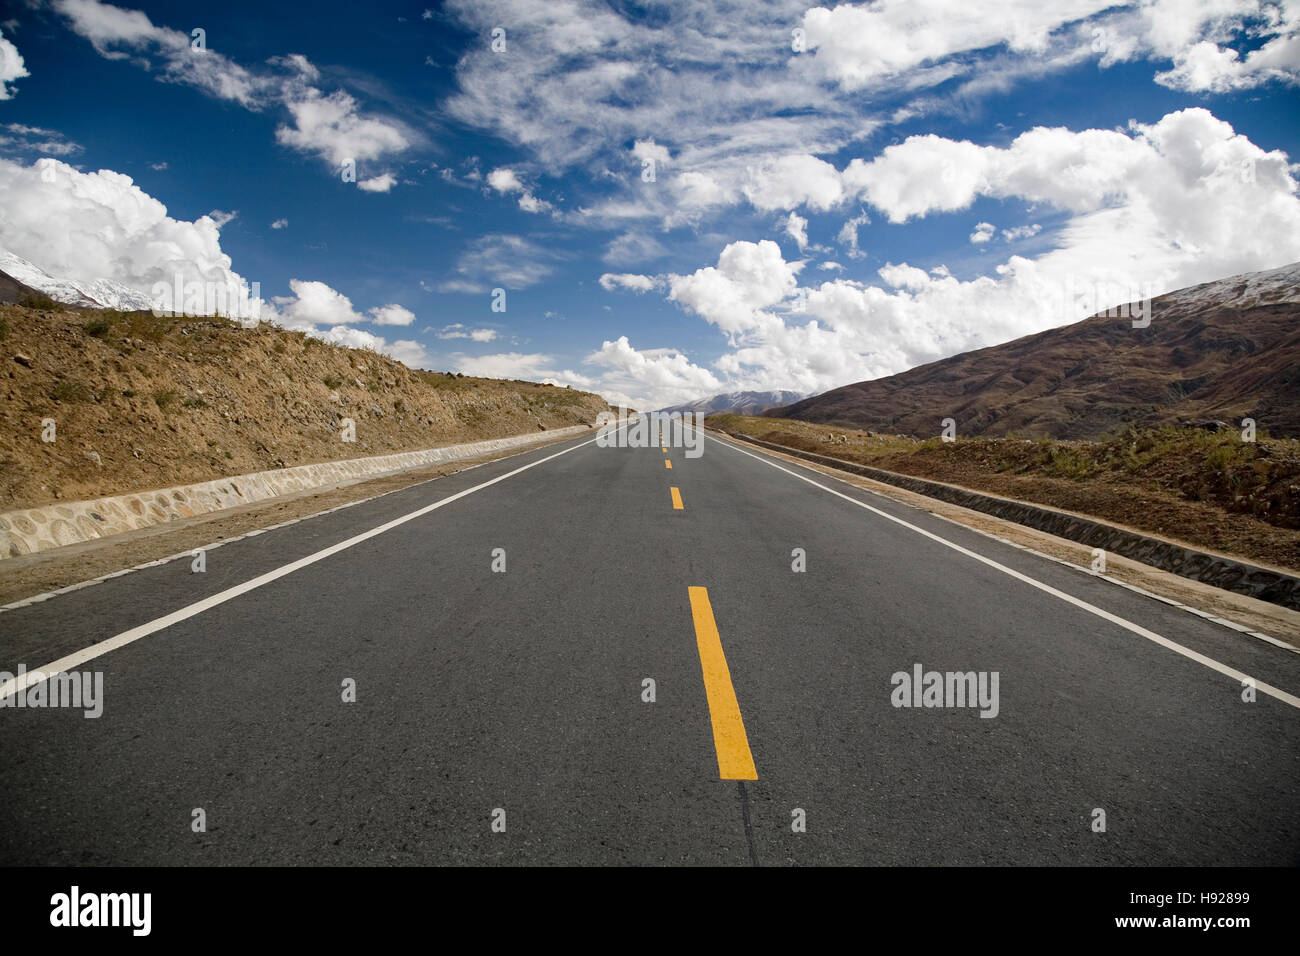 Endless road from Lhasa to Gyangtse in Tibet. - Stock Image